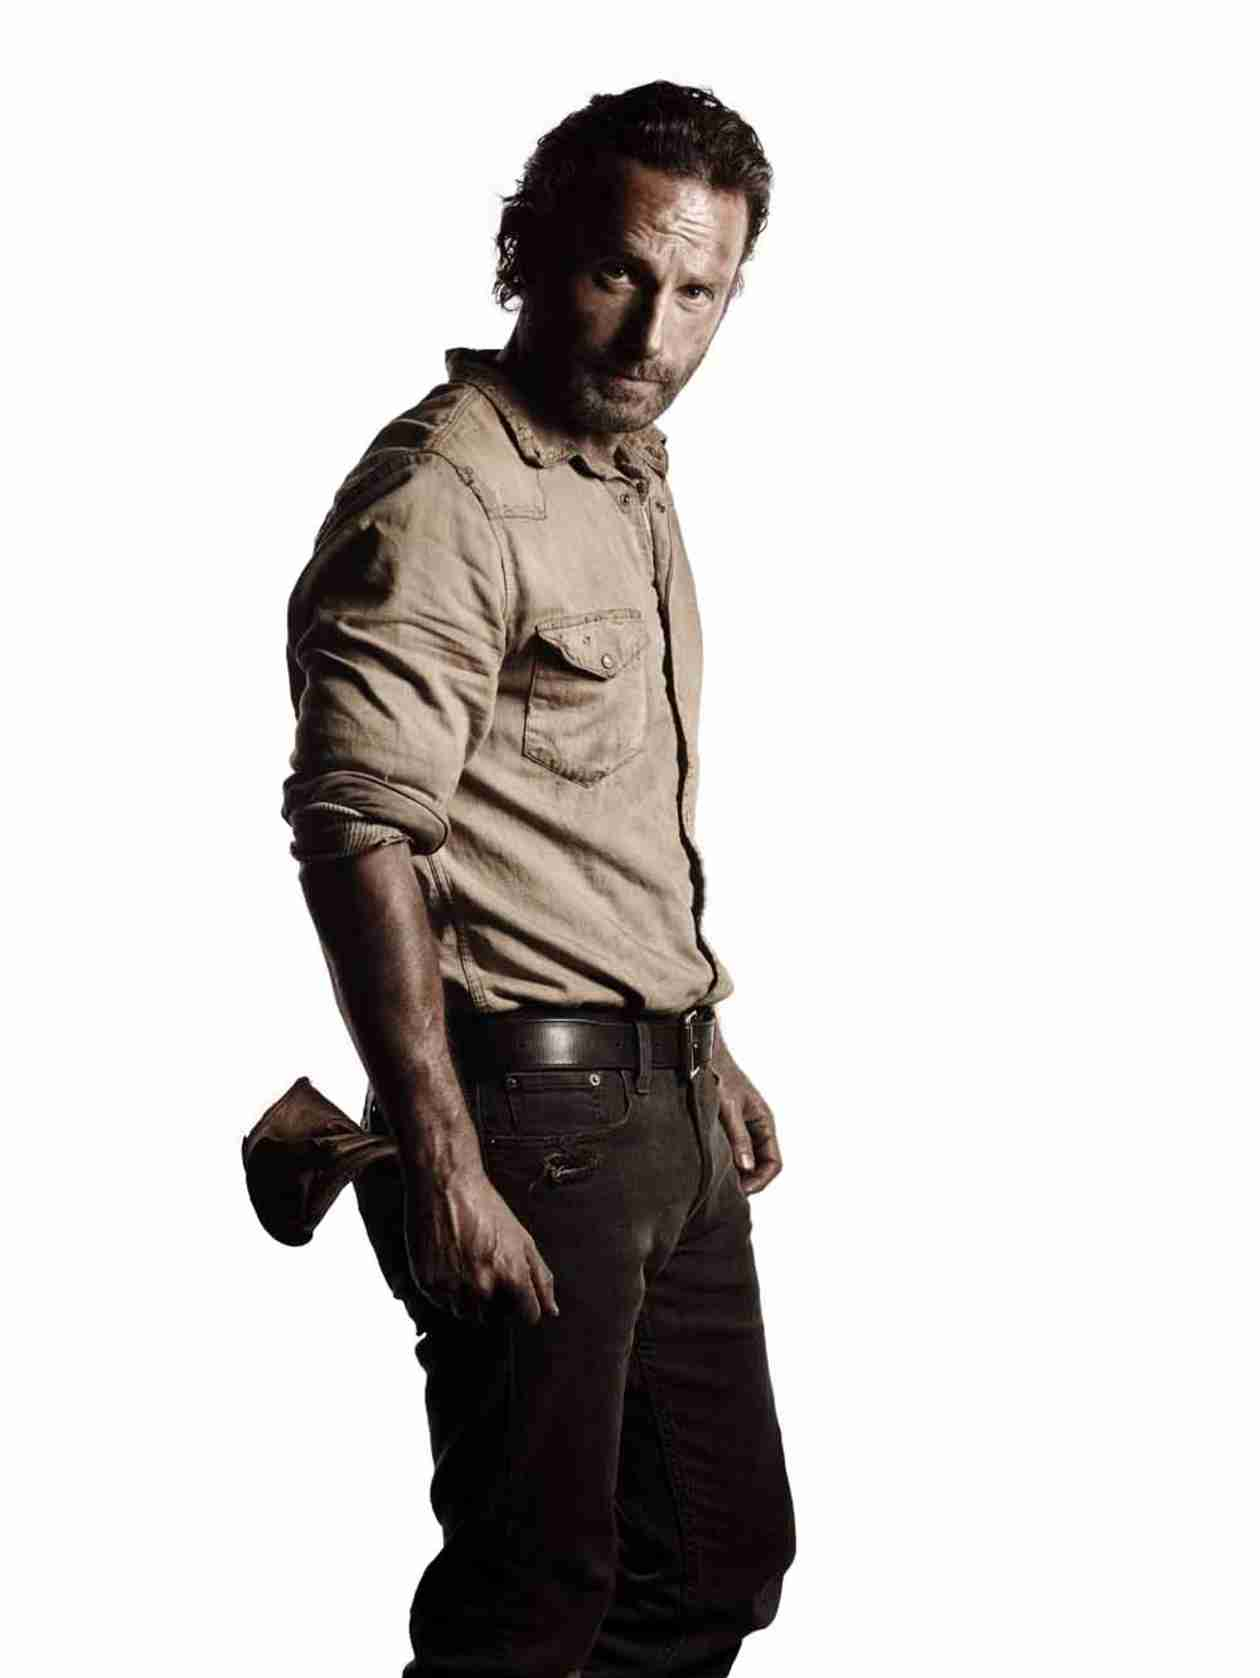 What Does Andrew Lincoln Smell Like? Sarah Wayne Callies Answers in Great Reddit AMA